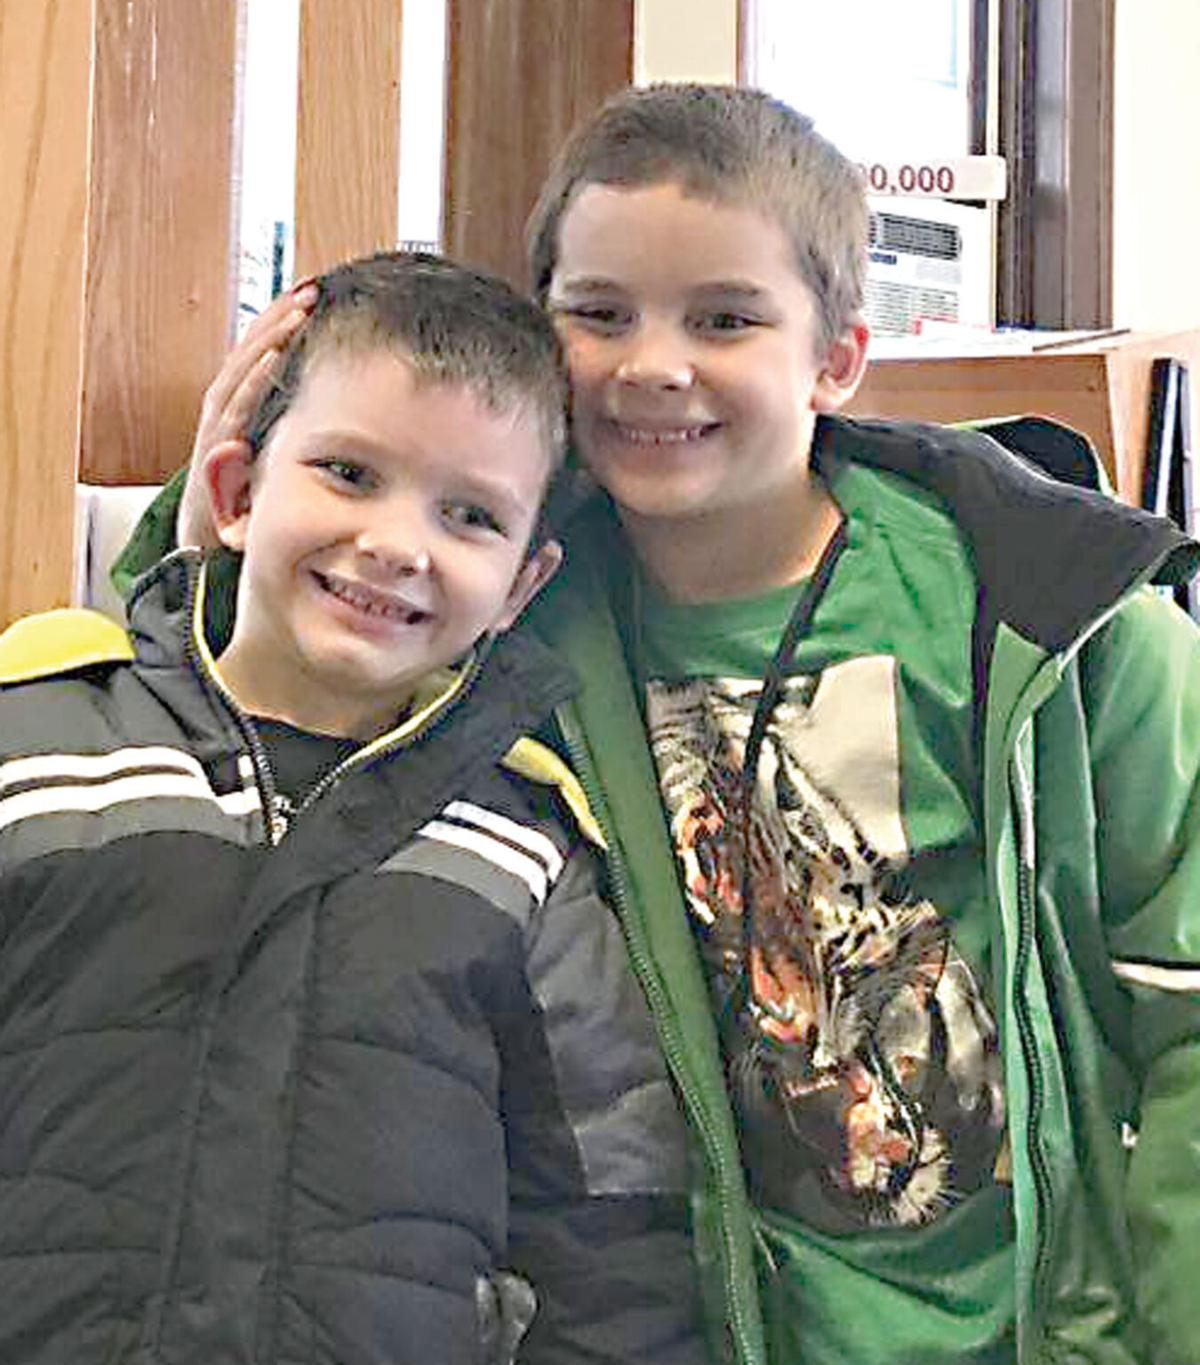 Brothers donate Christmas to library project